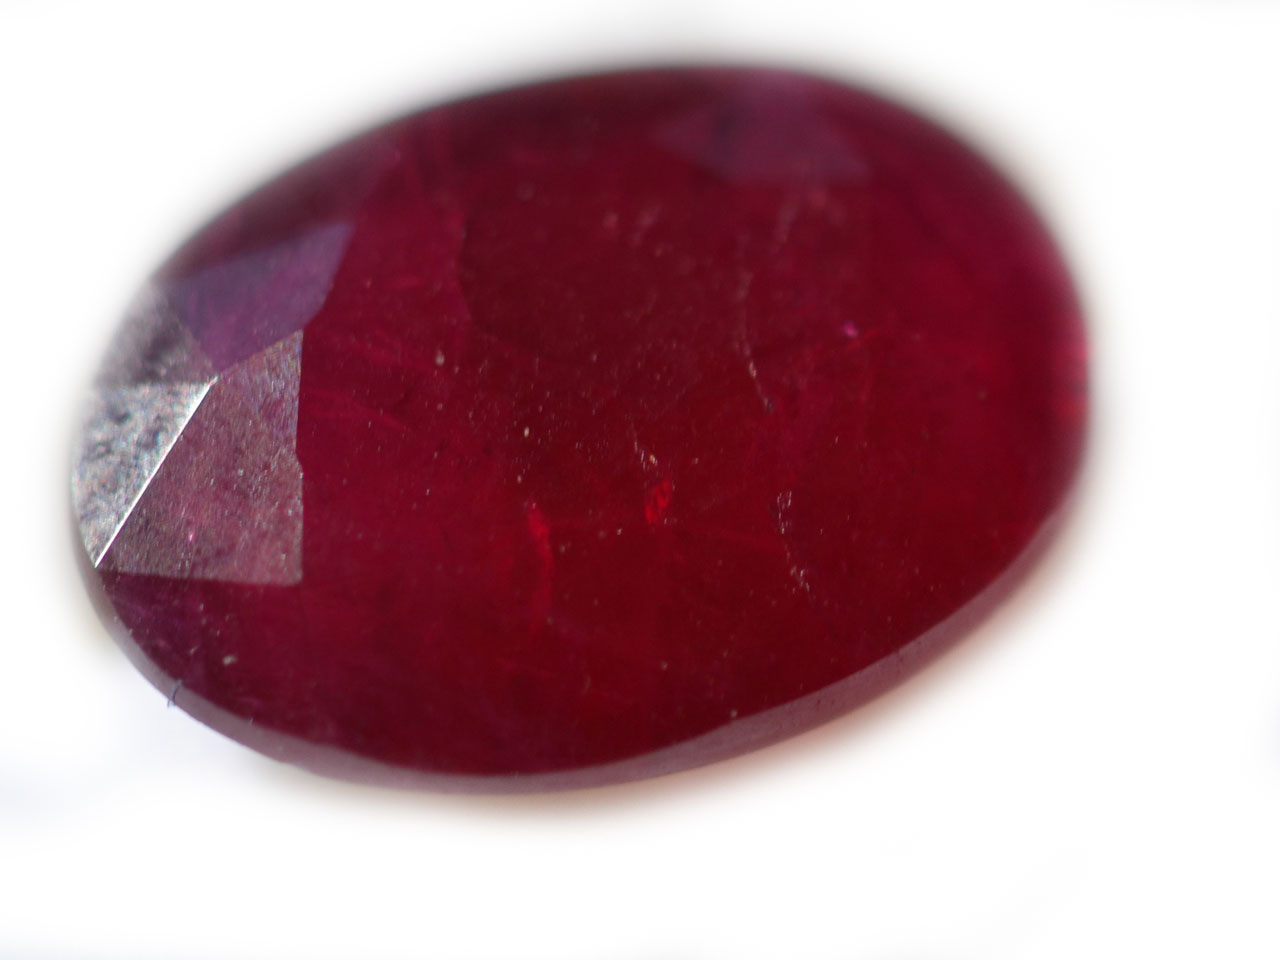 GIA Certified Unheated Indian Ruby Oval 2.36 carats 10.4x7.5x3mm